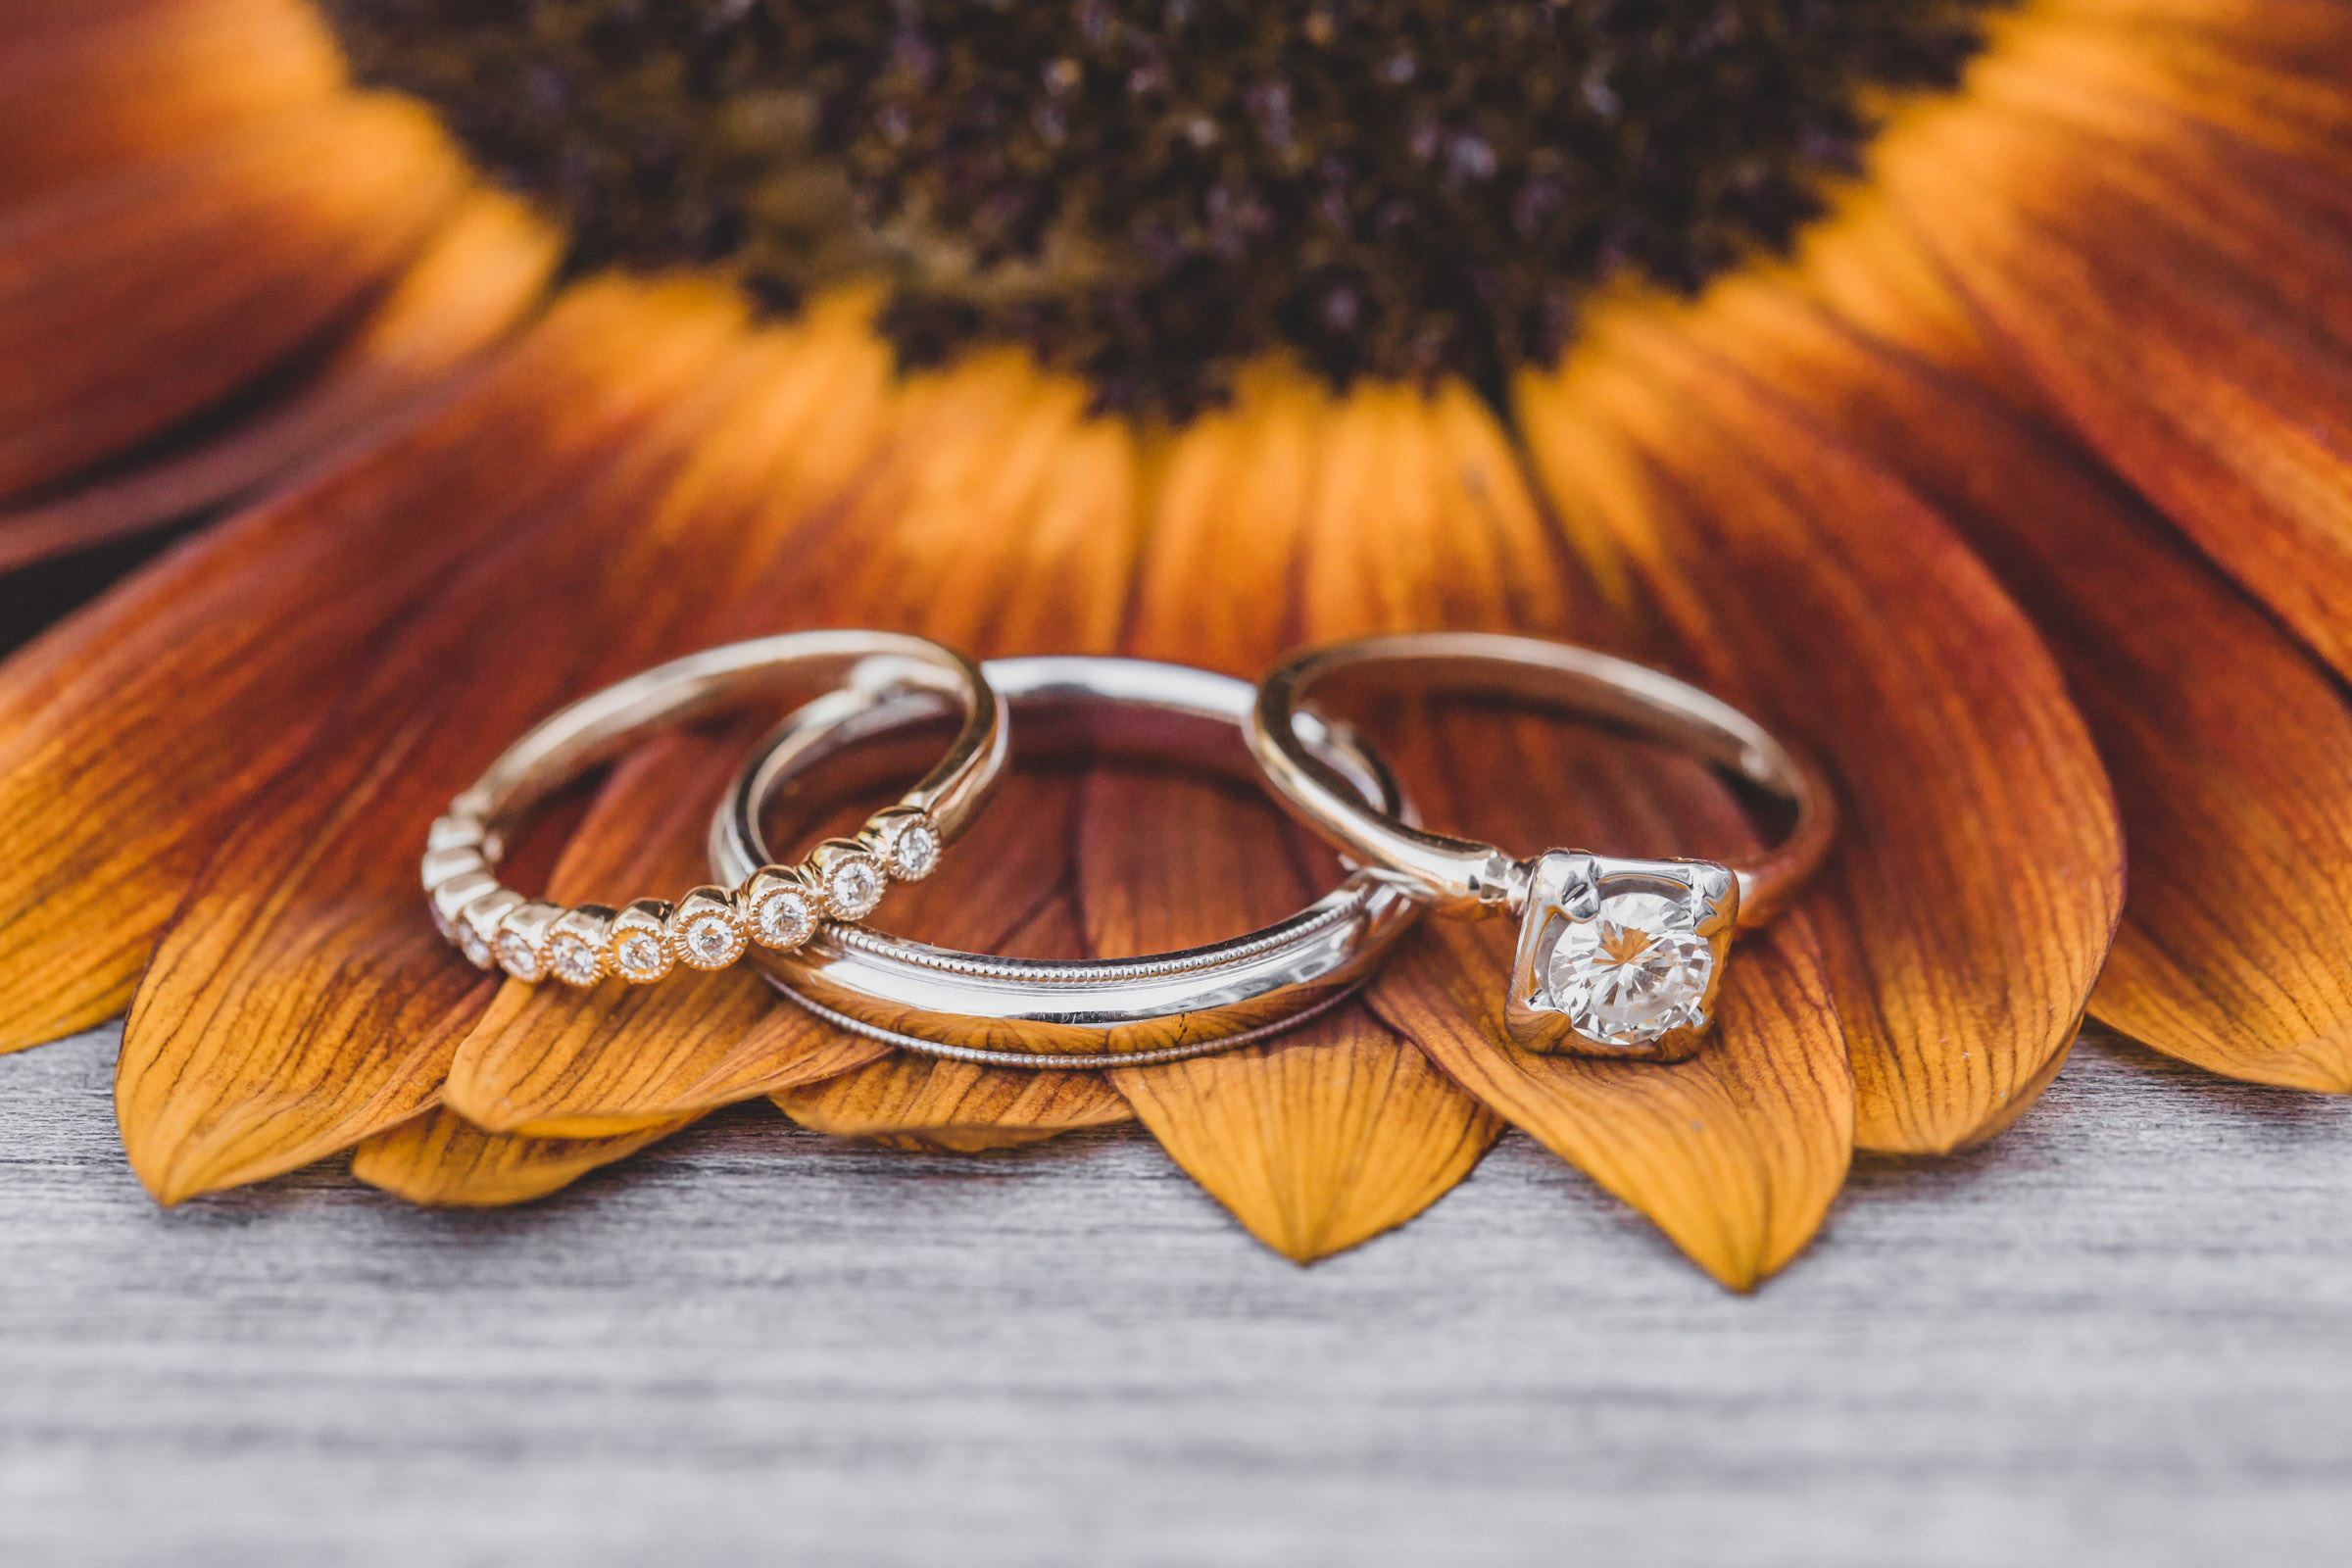 rings-displayed-on-flower-petals-katie-kaizer-photography